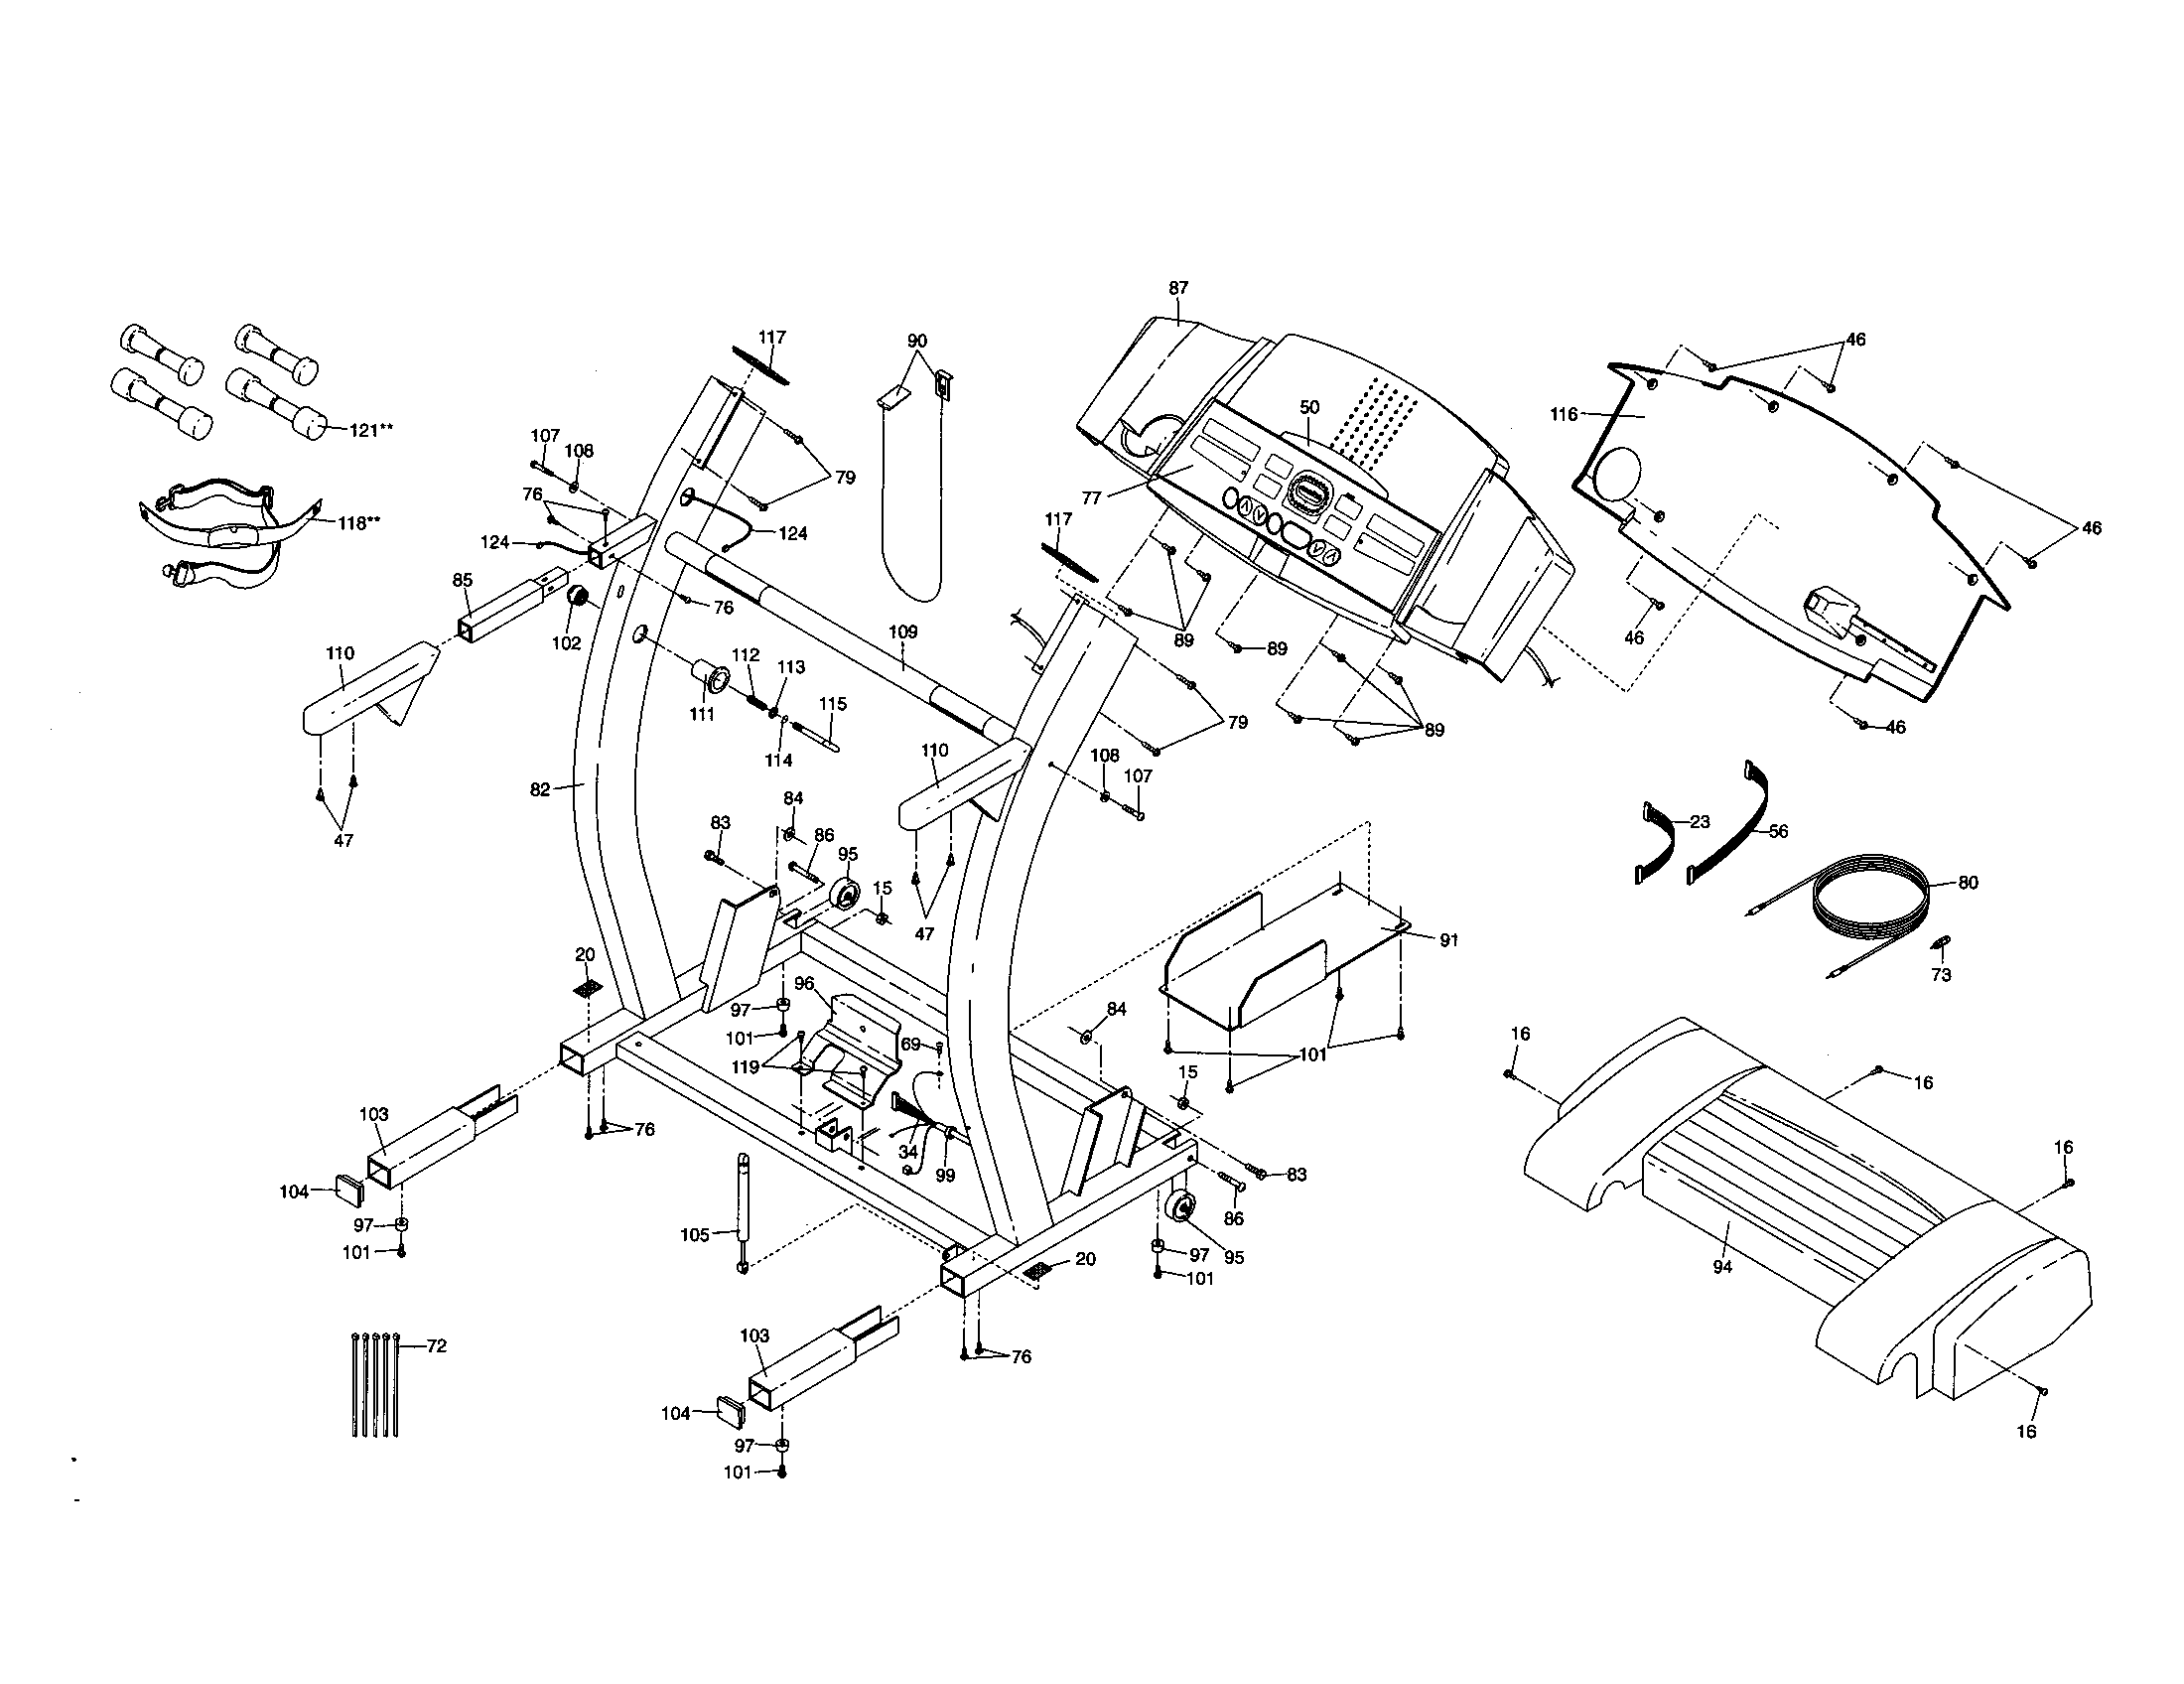 CONSOLE BASE Diagram & Parts List for Model 831299270